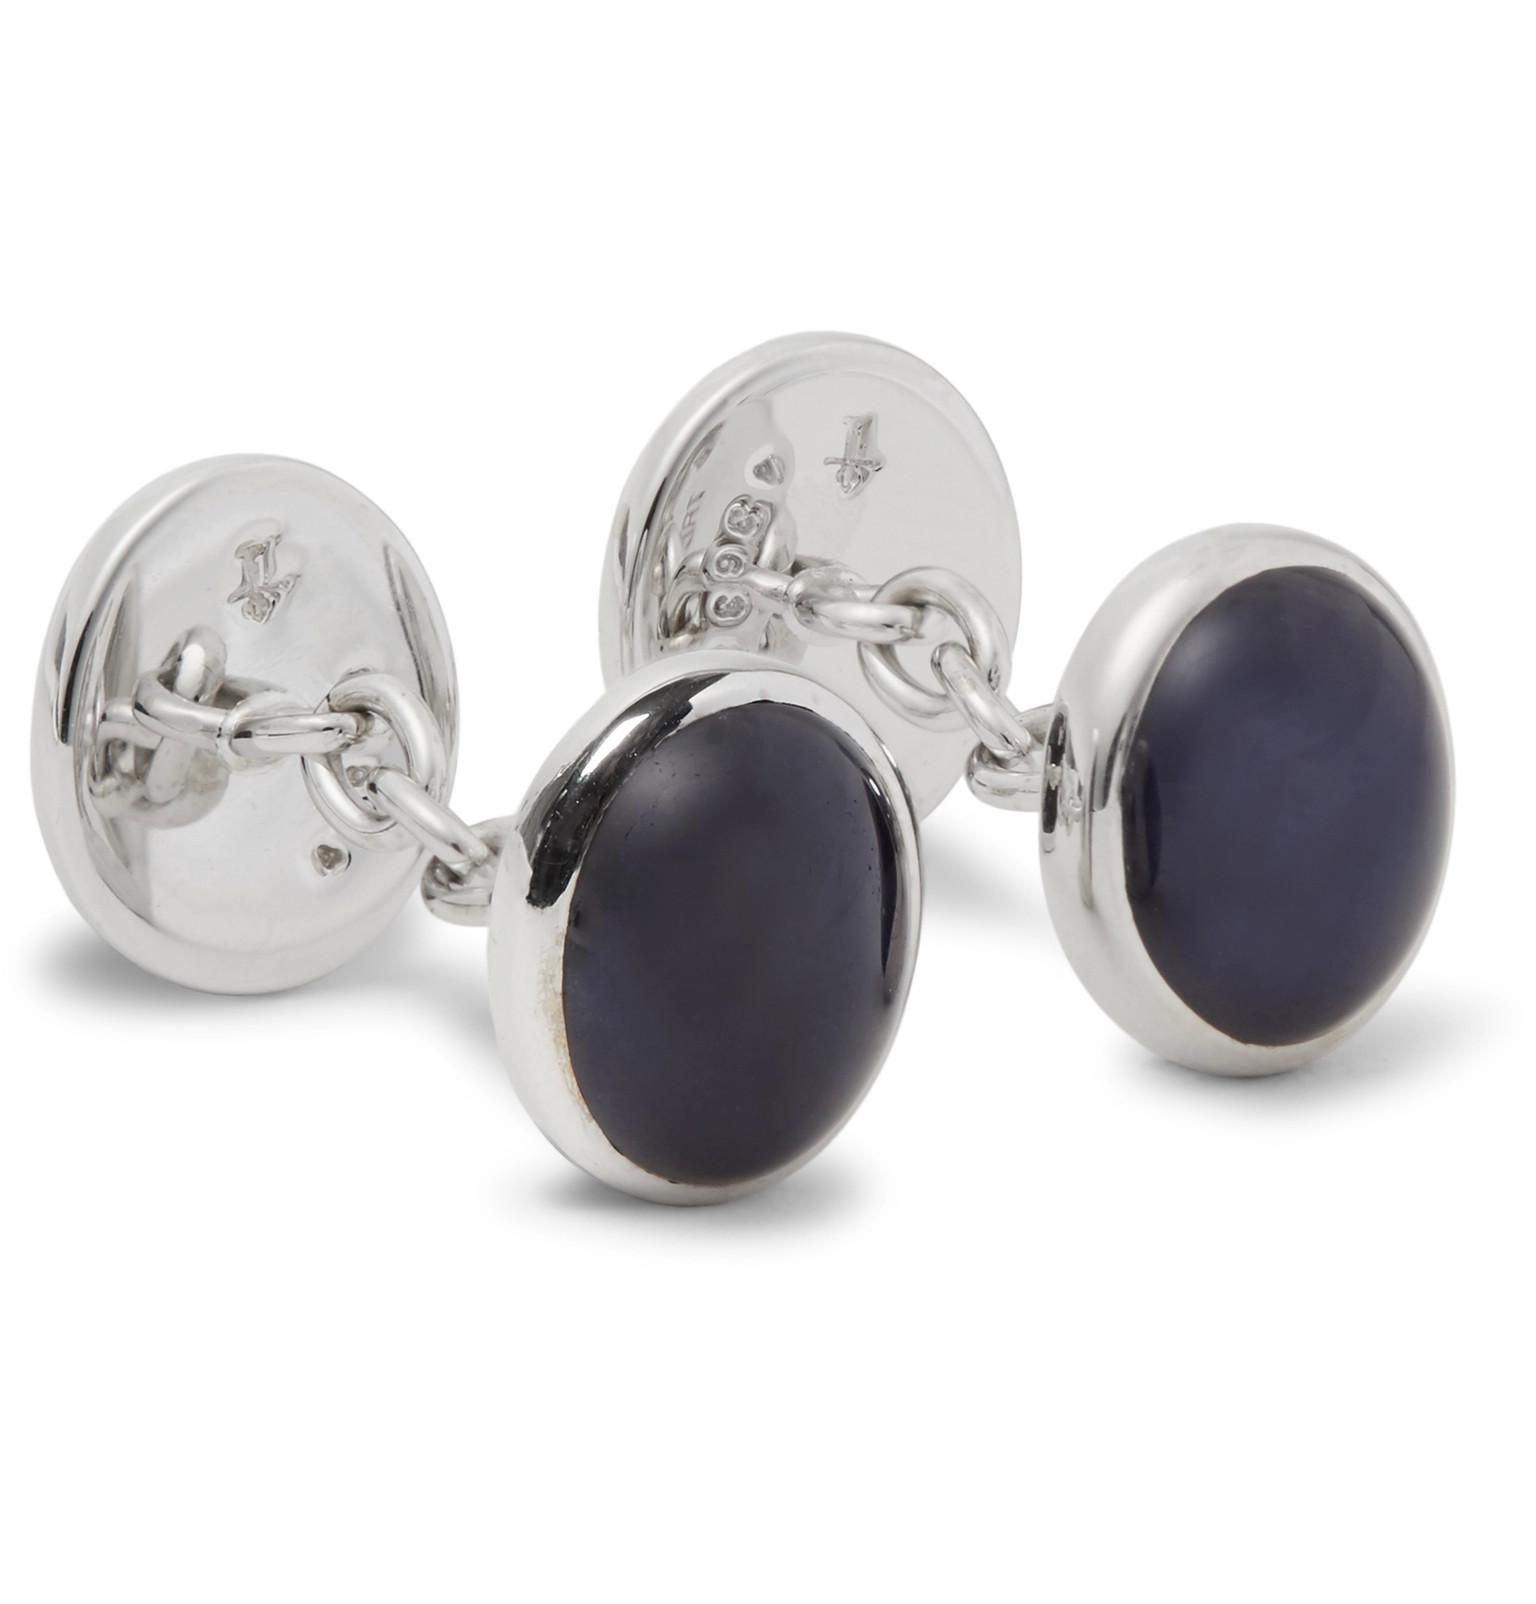 Trianon Carved Crystal, 18-karat White Gold And Pearl Cufflinks - Silver